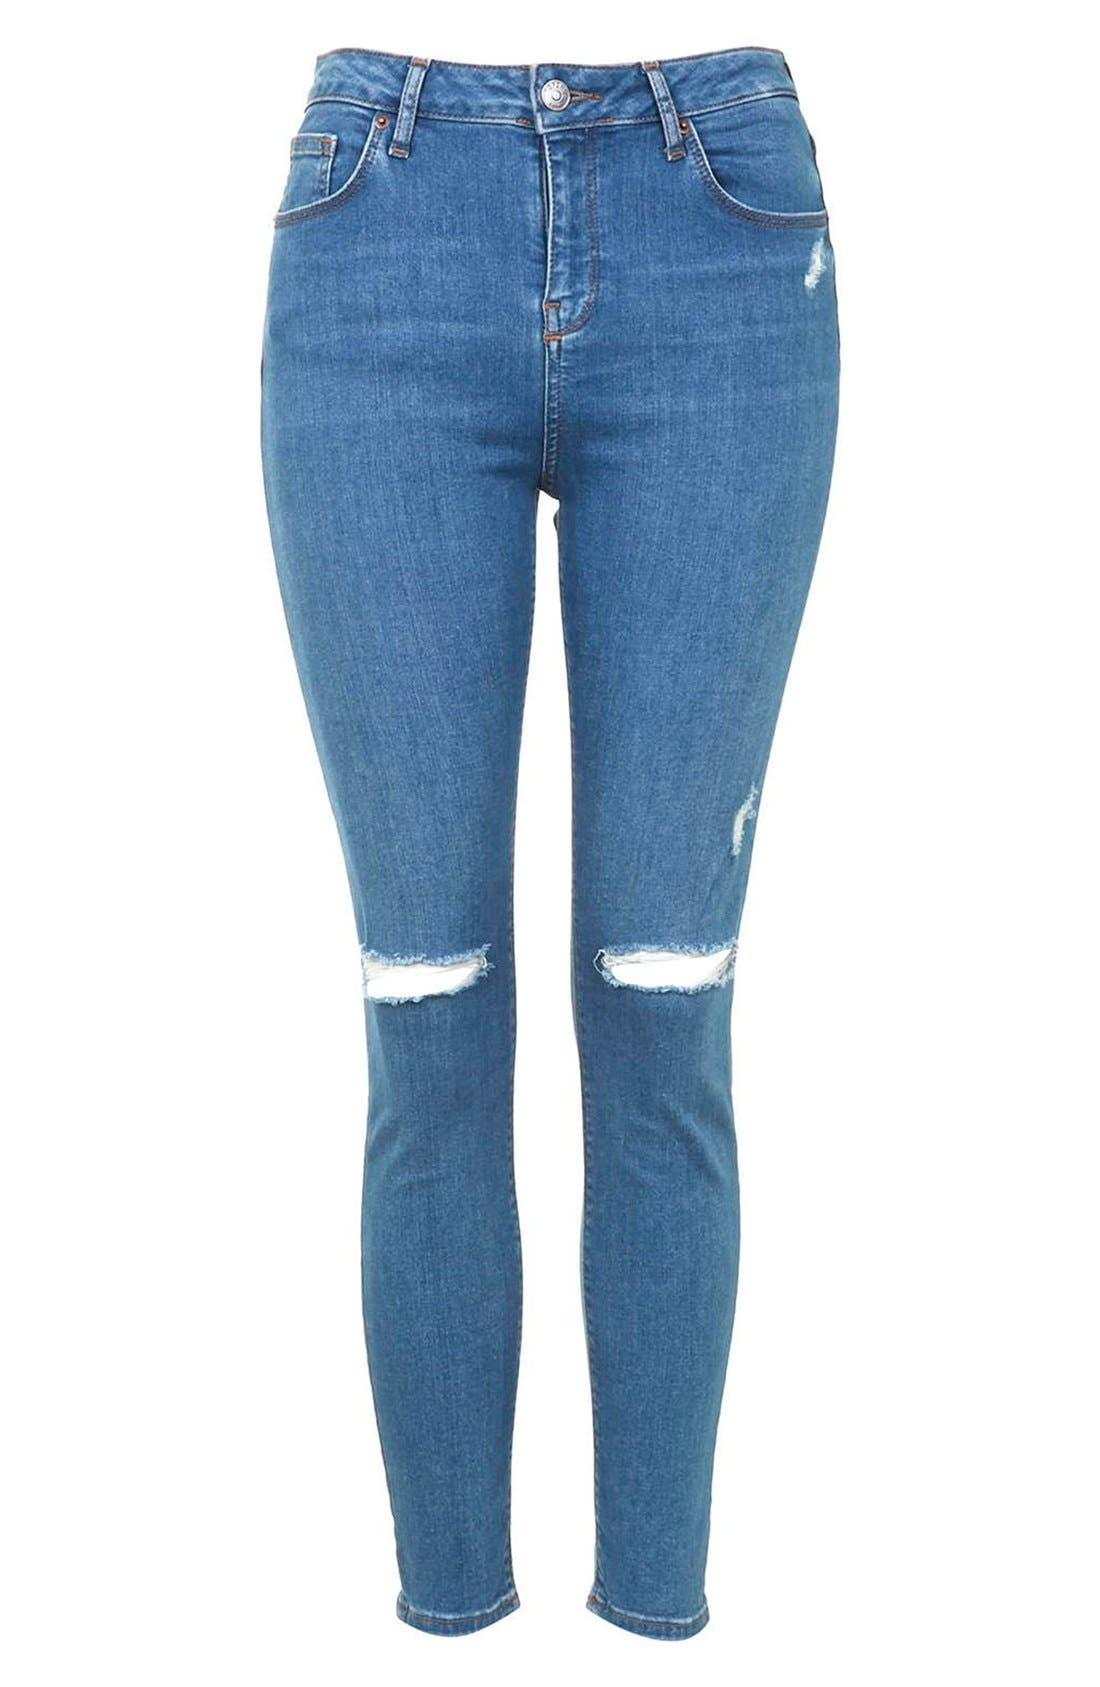 Moto 'Jamie' High Rise Skinny Jeans,                             Alternate thumbnail 5, color,                             400